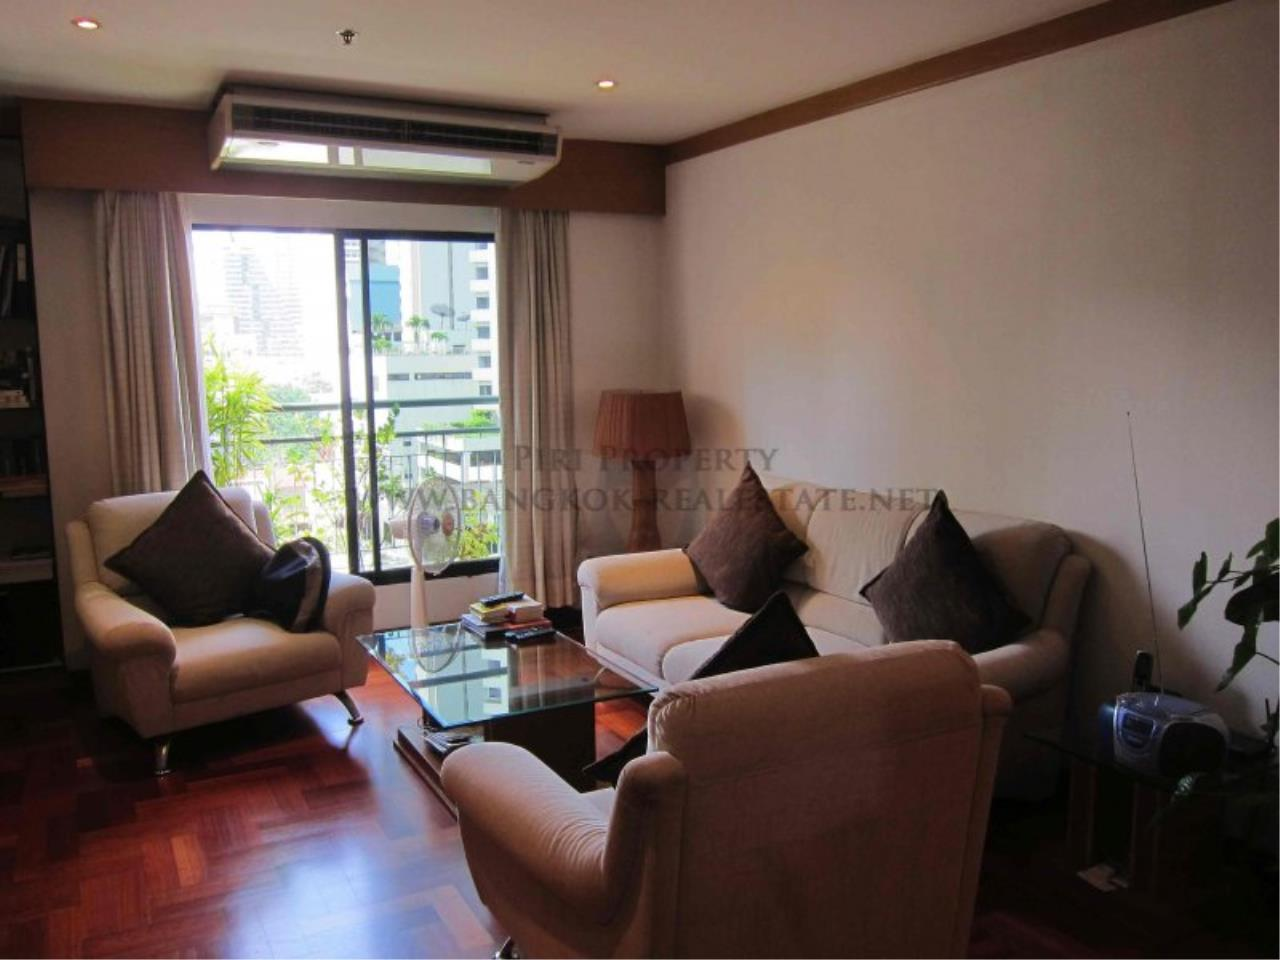 Piri Property Agency's Liberty Park 2 Condominium - Fully furnished 2 Bedroom Condo for Rent 1